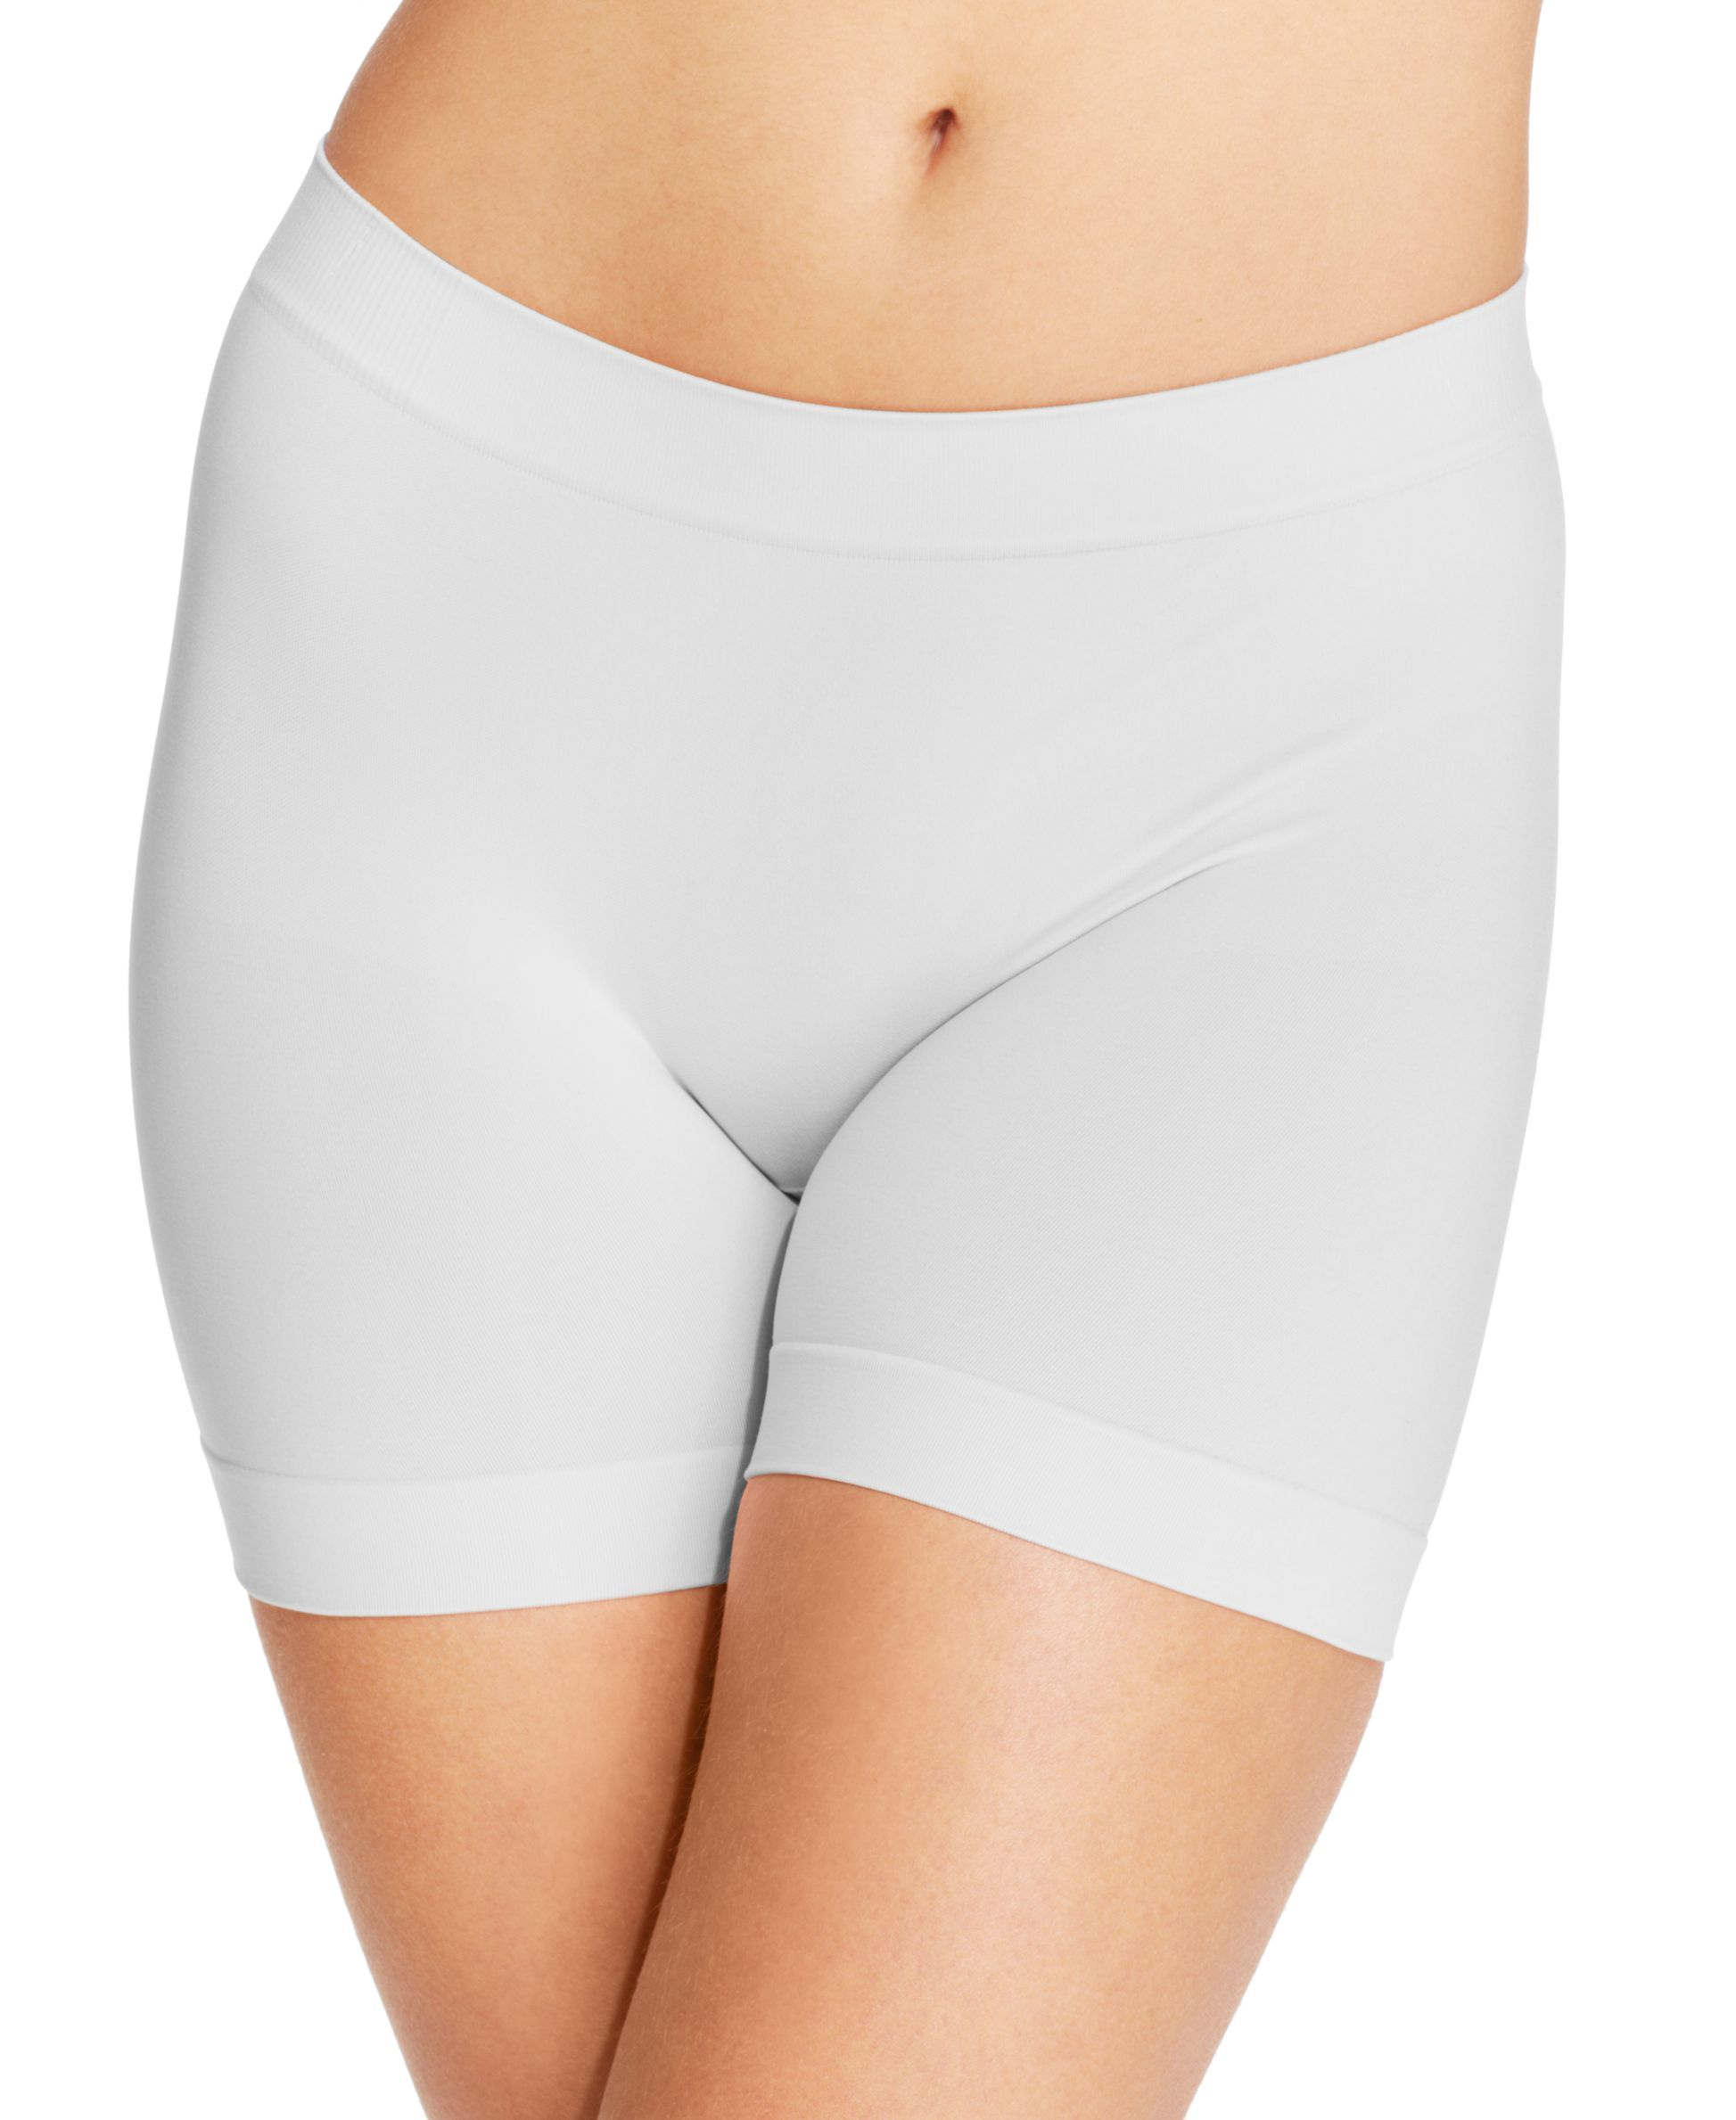 e67724f12cf14 Jockey Skimmies Short Length Slip Shorts 2108